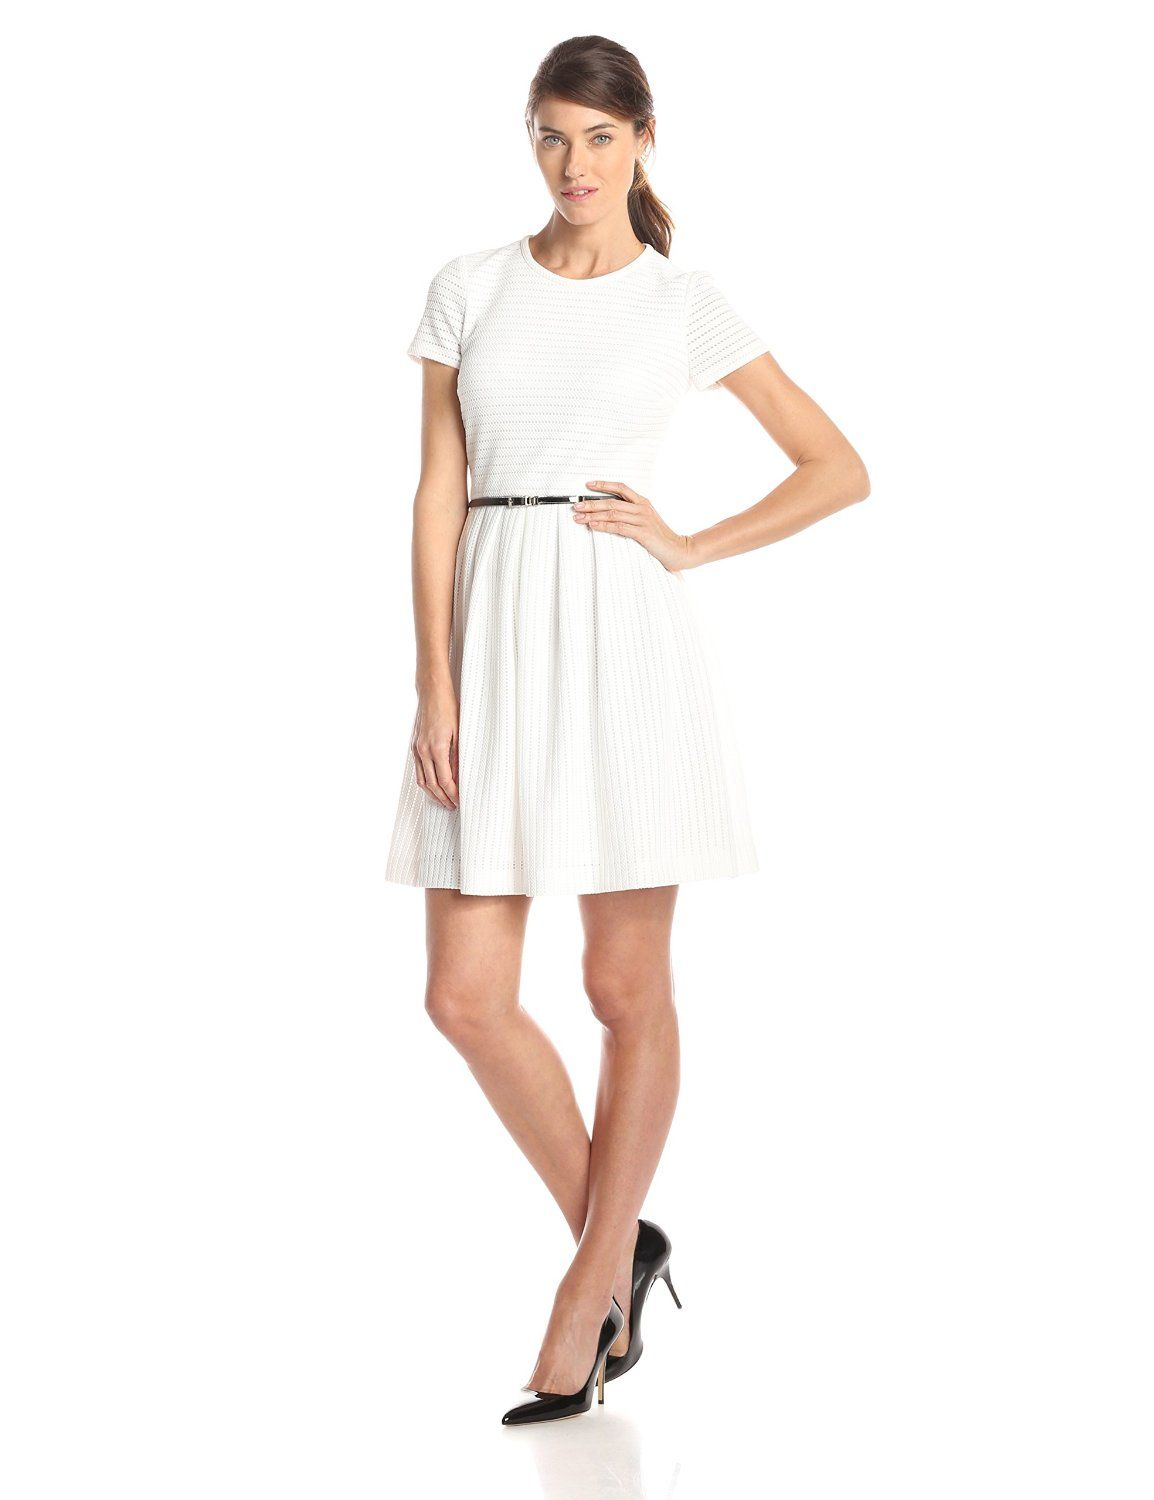 9401b1288d5 Short Sleeve Belted Fit and Flare Dress by Calvin Klein